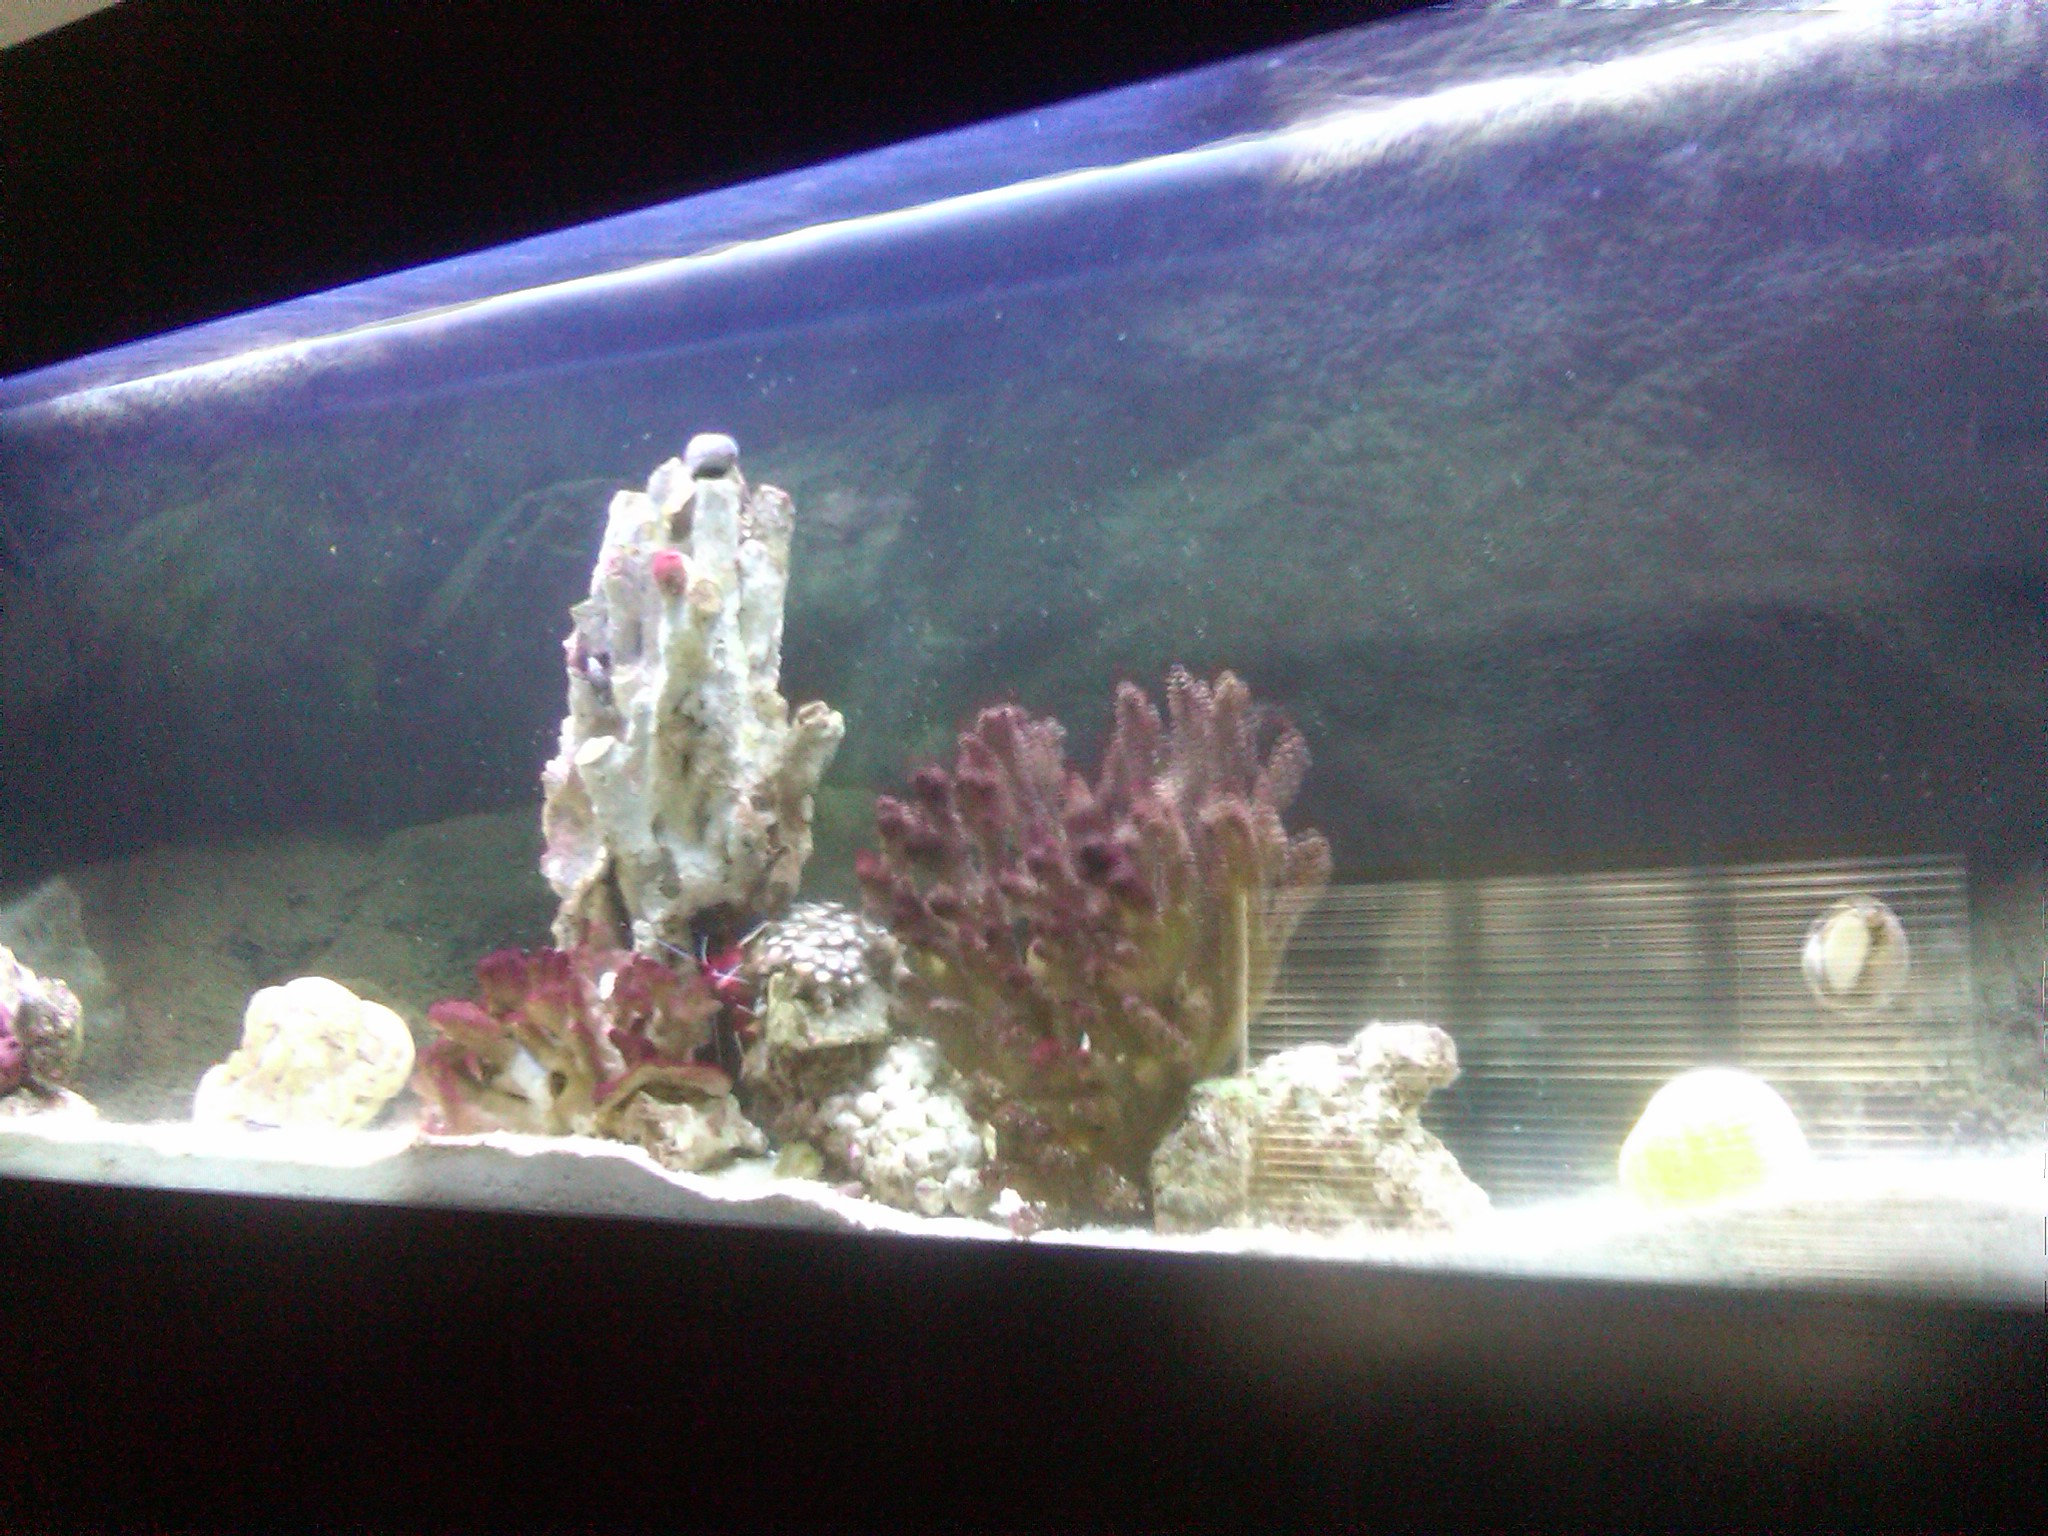 invertebrates live all fish Beginners Discussion Nano Reef